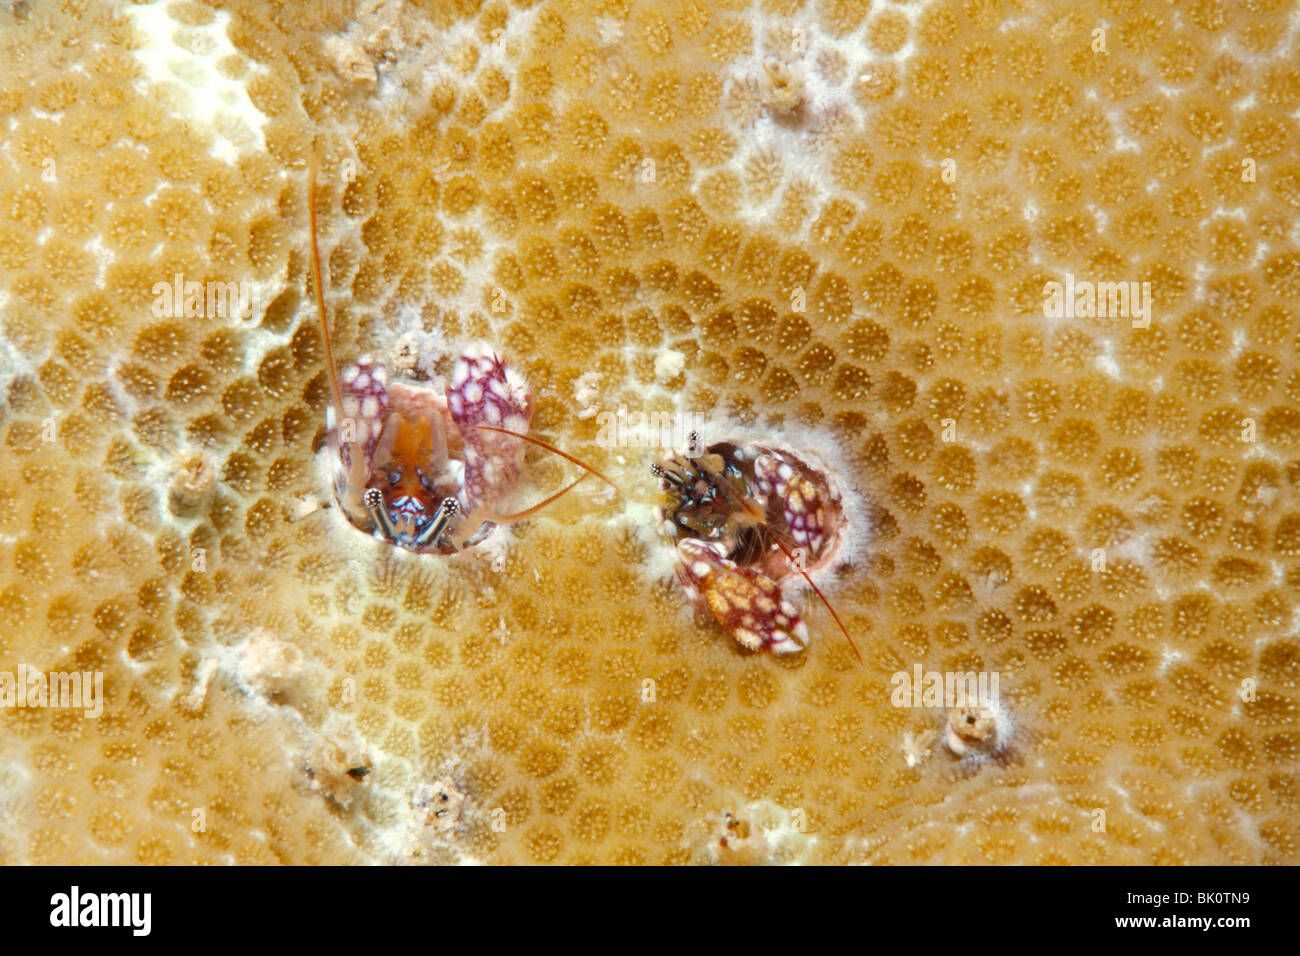 Coral hermit crabs, Paguritta sp - Stock Image